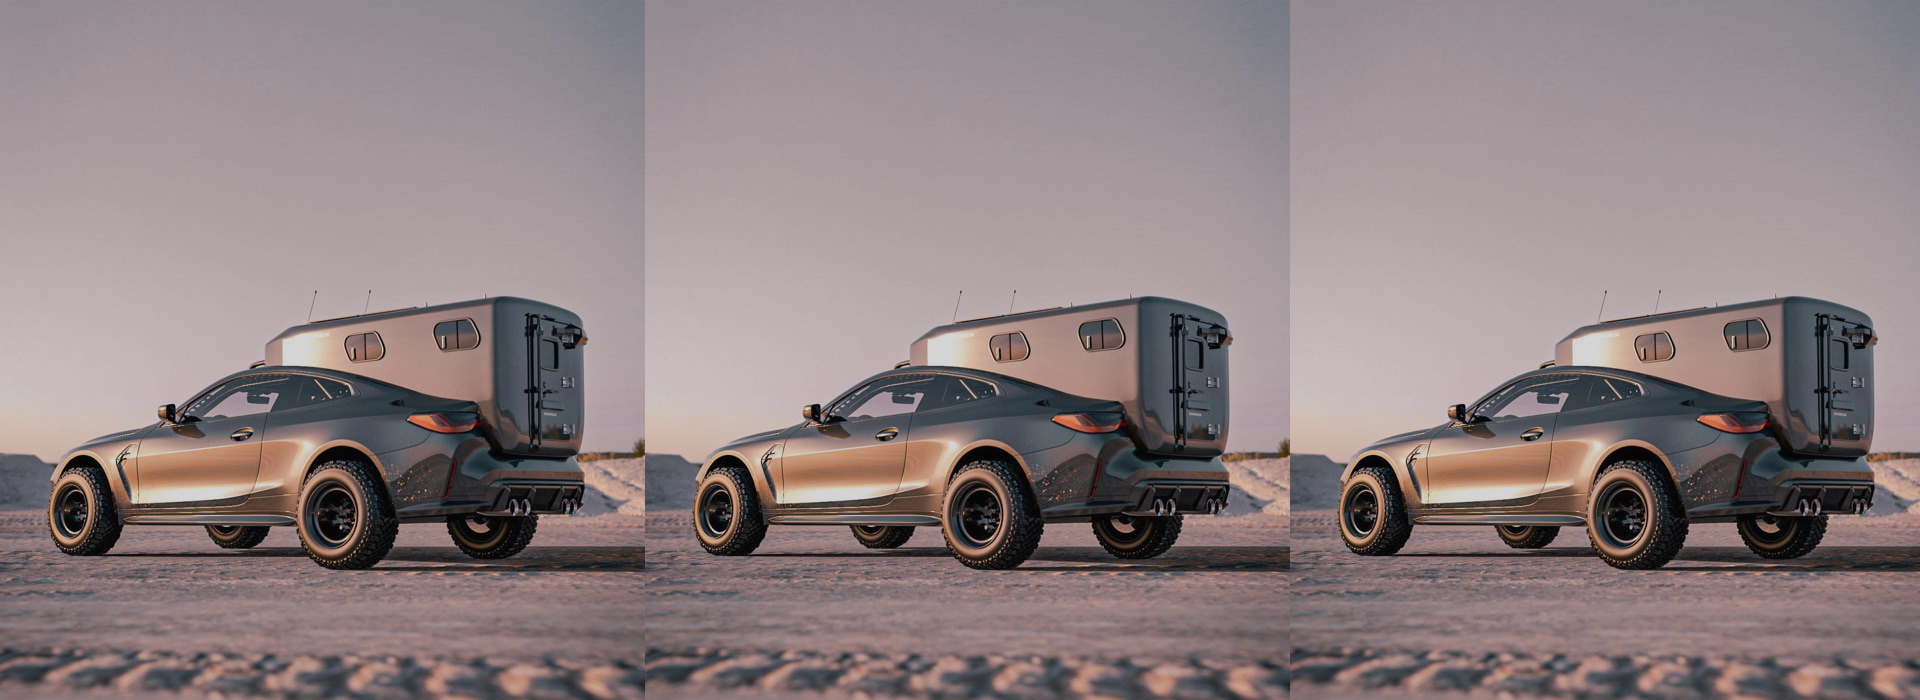 This concept for a BMW M4 Camper by BradBuilds adds a bed, kitchenette & solar panels to the original luxurious leather interior.